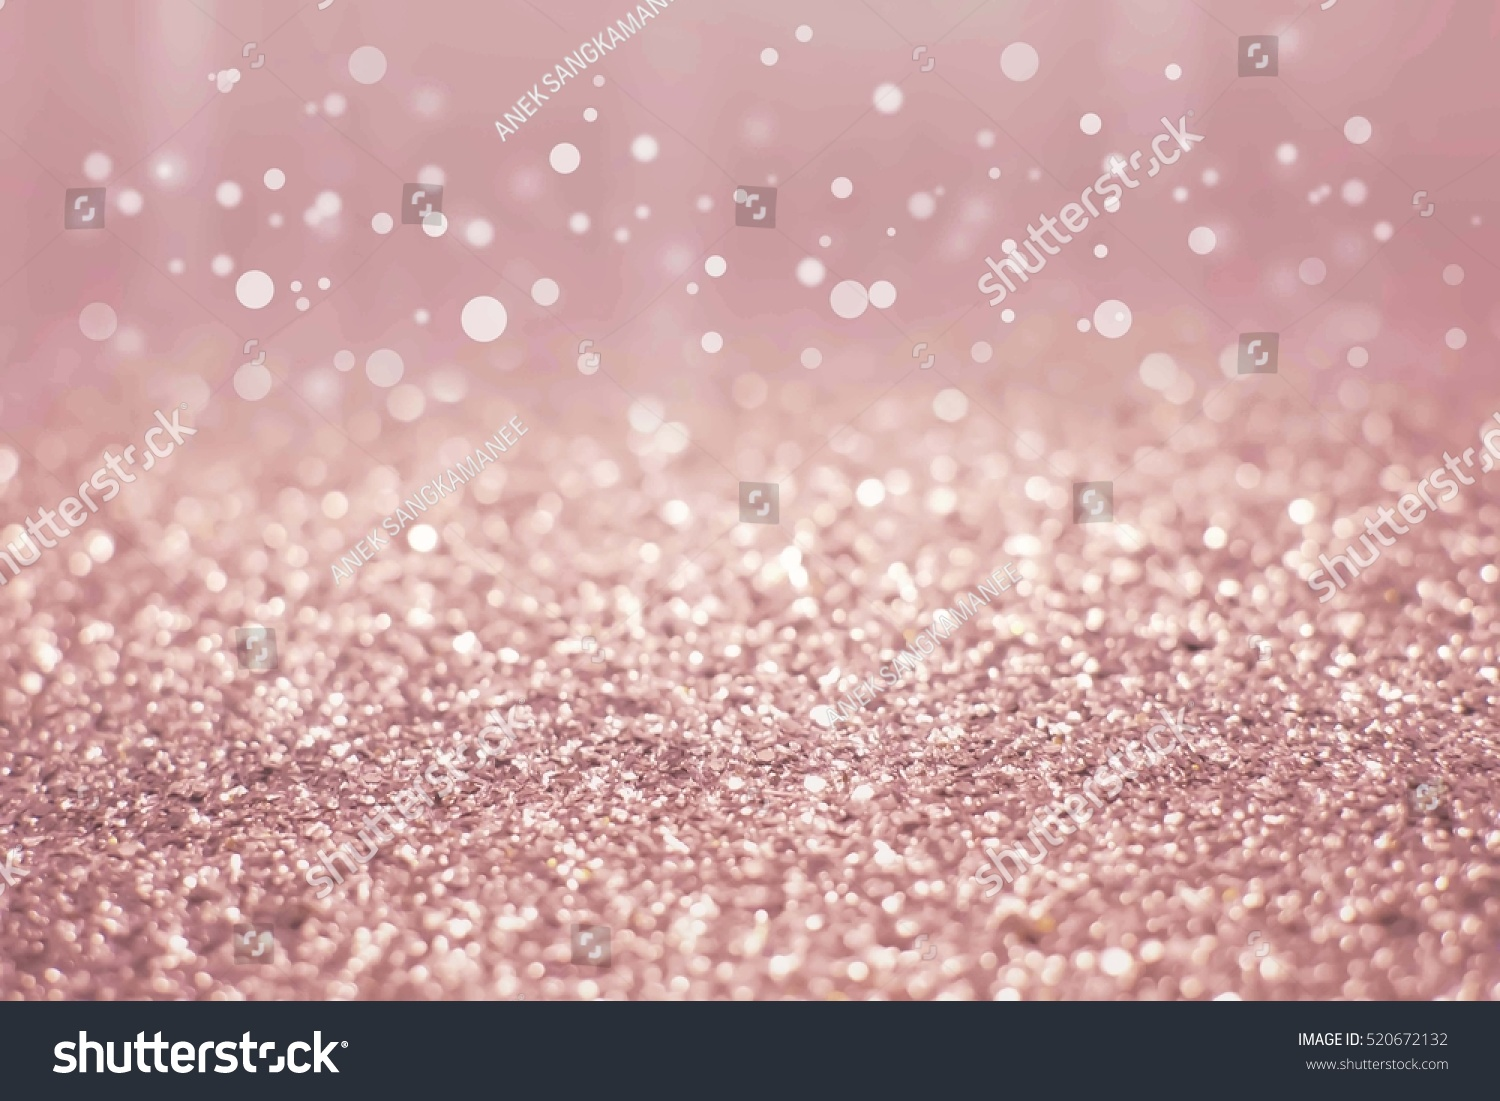 Rose Gold And Silver Abstract Glowing Christmas Background